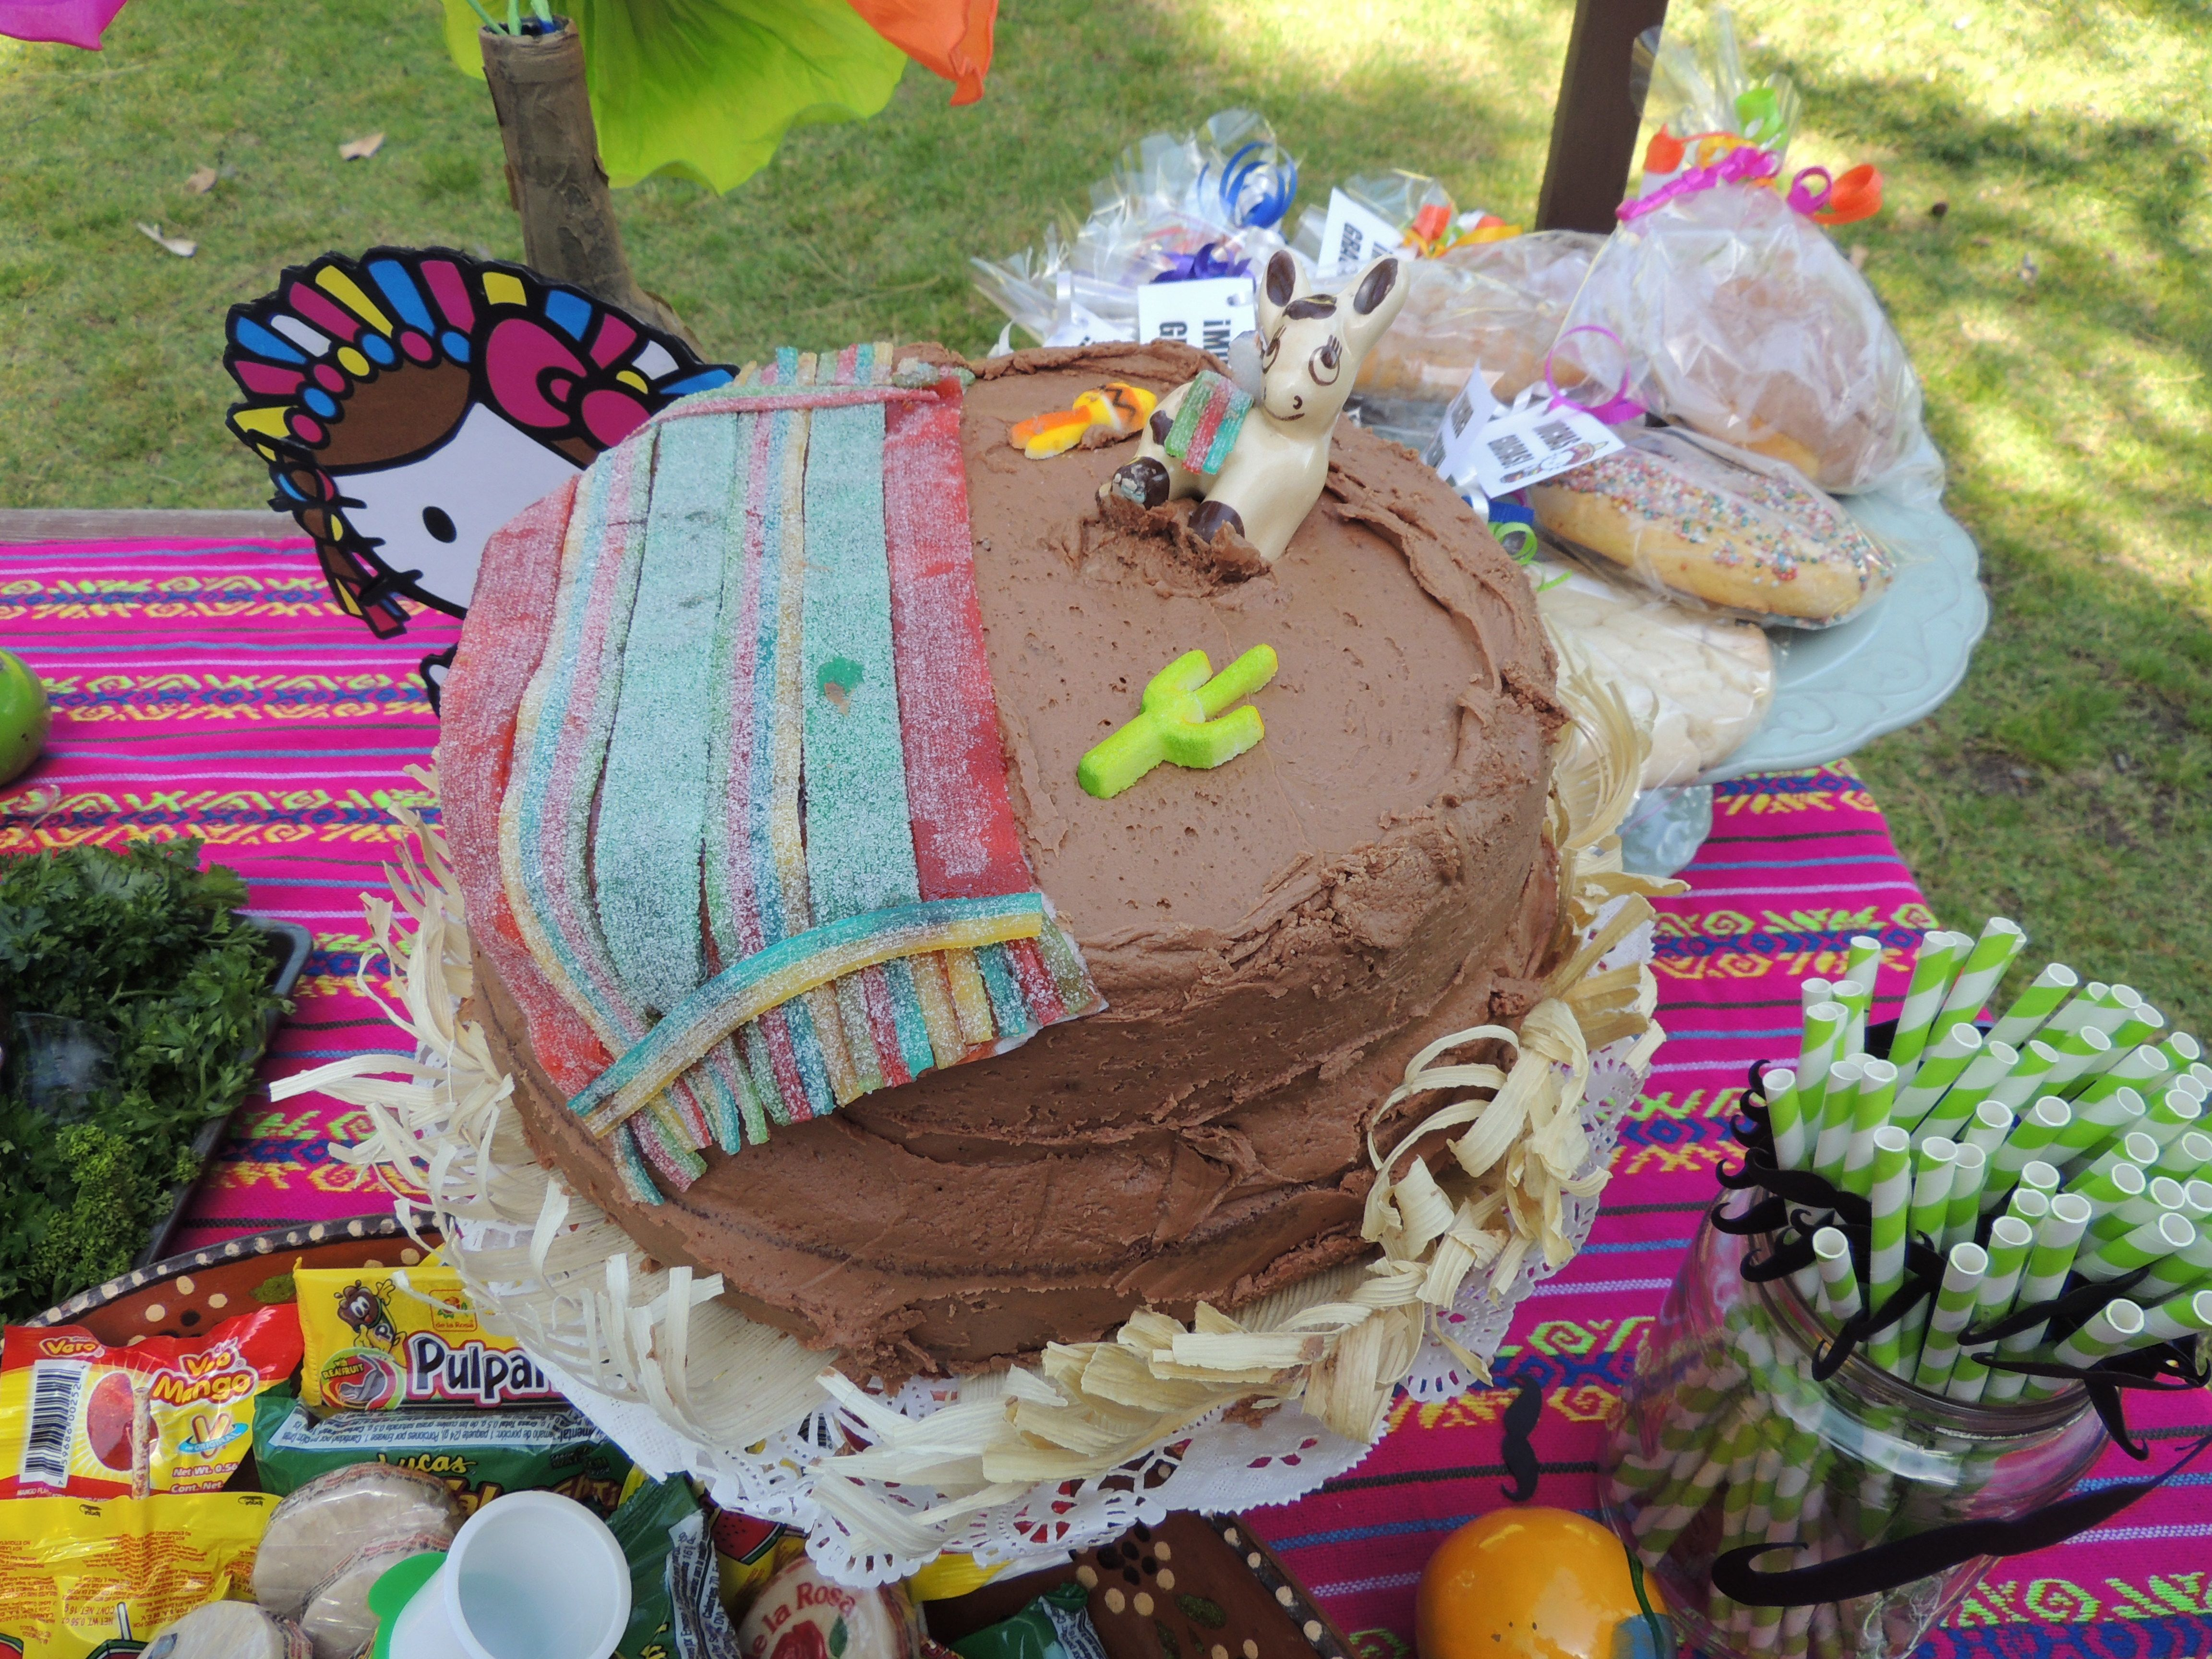 Grandma Ana made her famous chocolate cake for nyah and her decorations are so cool! She topped it with a donkey and a serape out of sour candies. #Mexican #HelloKitty #Fiesta